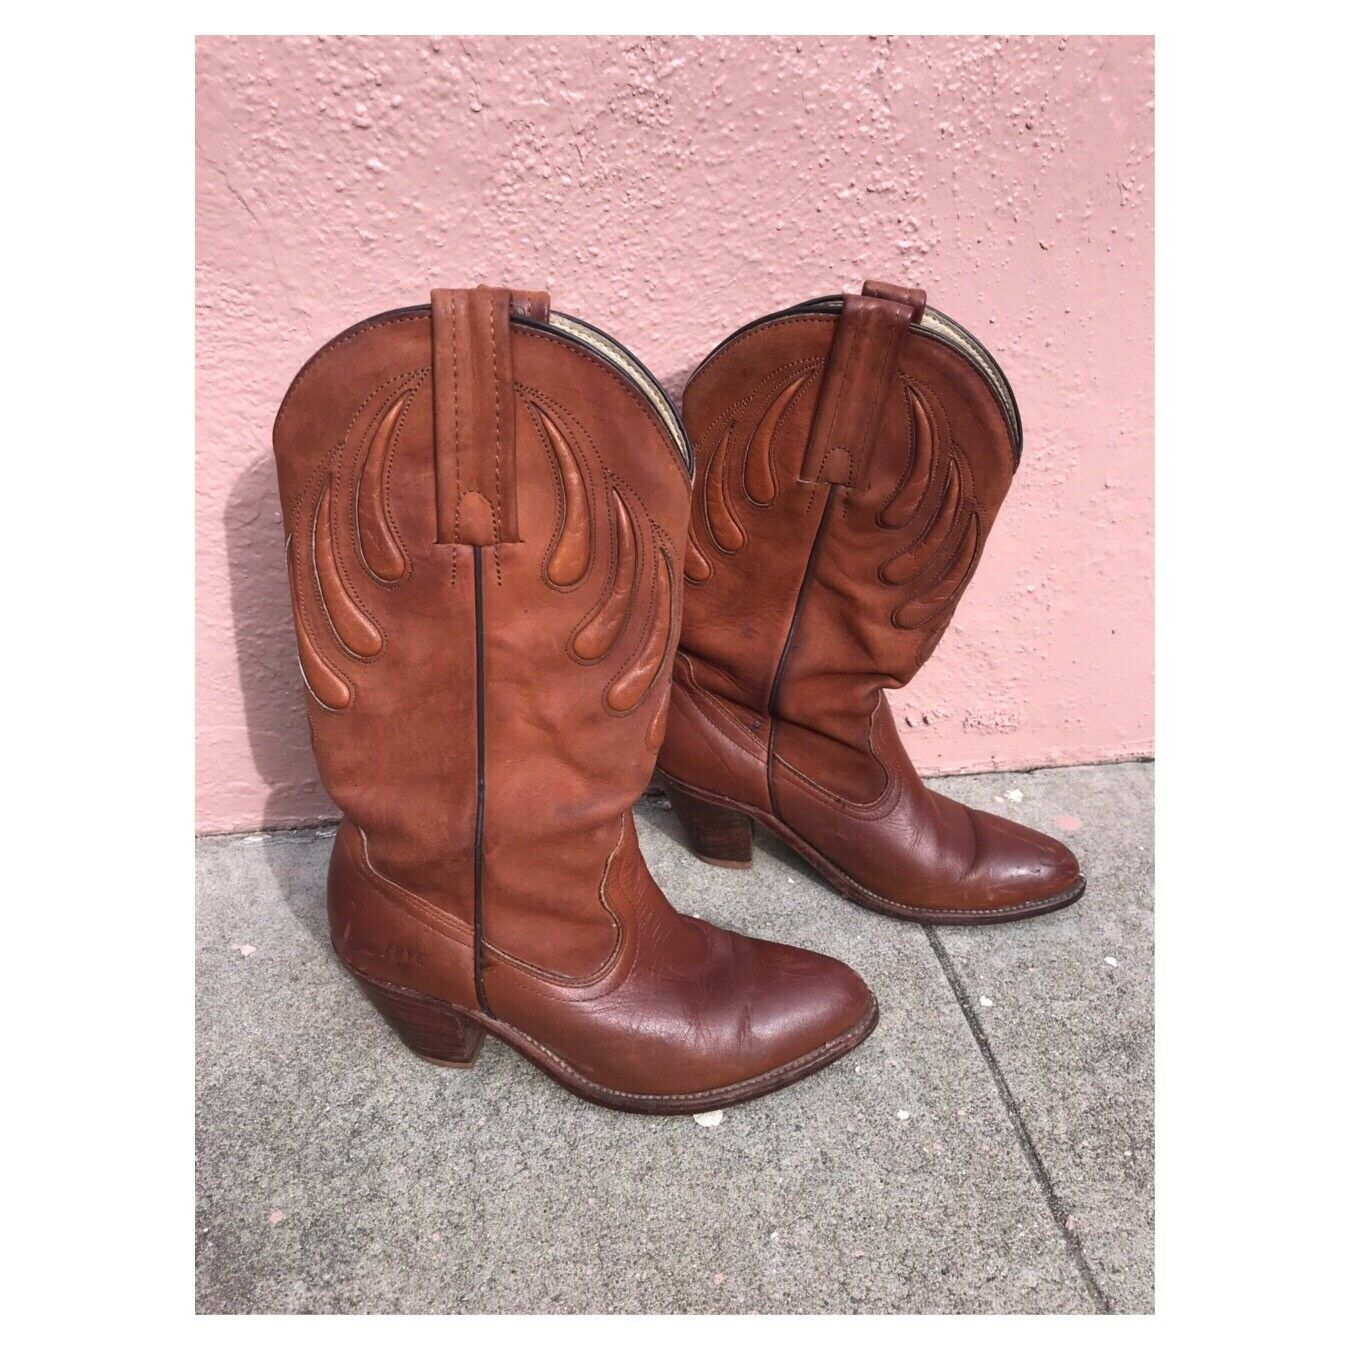 Frye Cowboy Boots Stacked Heel